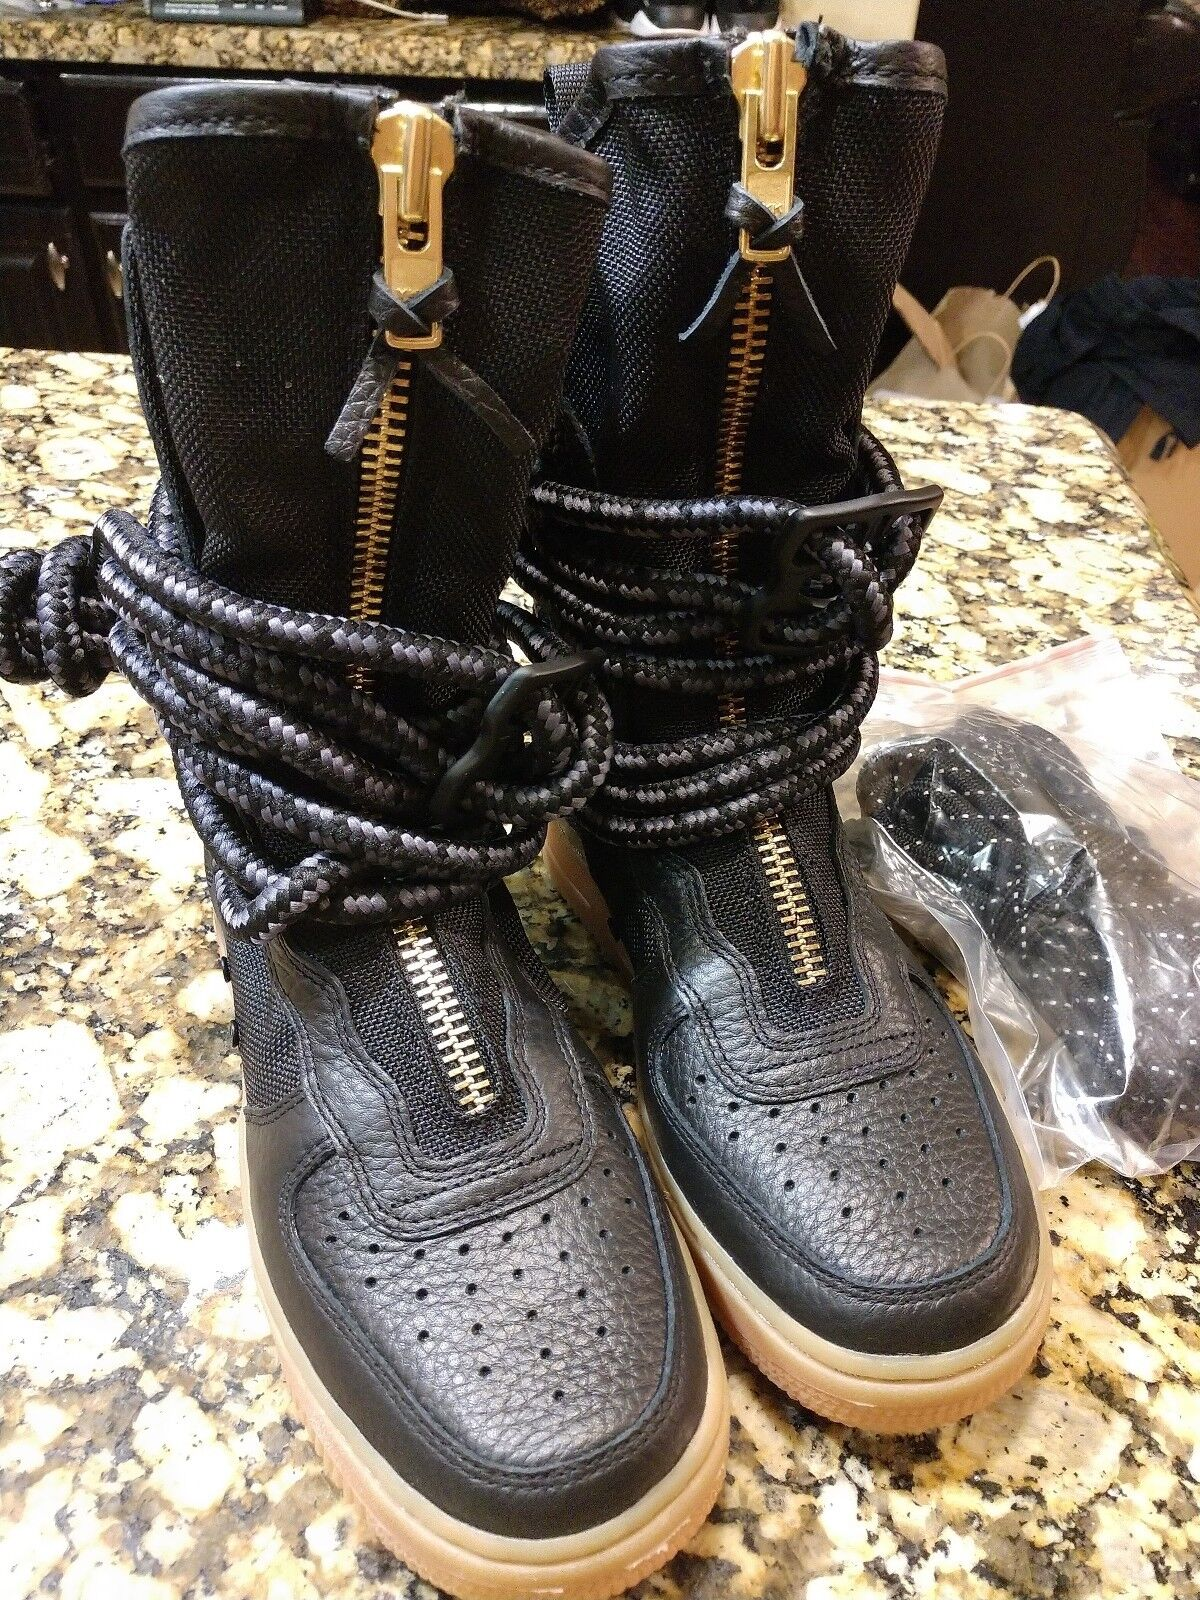 Nike SF AF1 Air Force 1 High Special Field shoes Black AA3965-001 Women Size 5